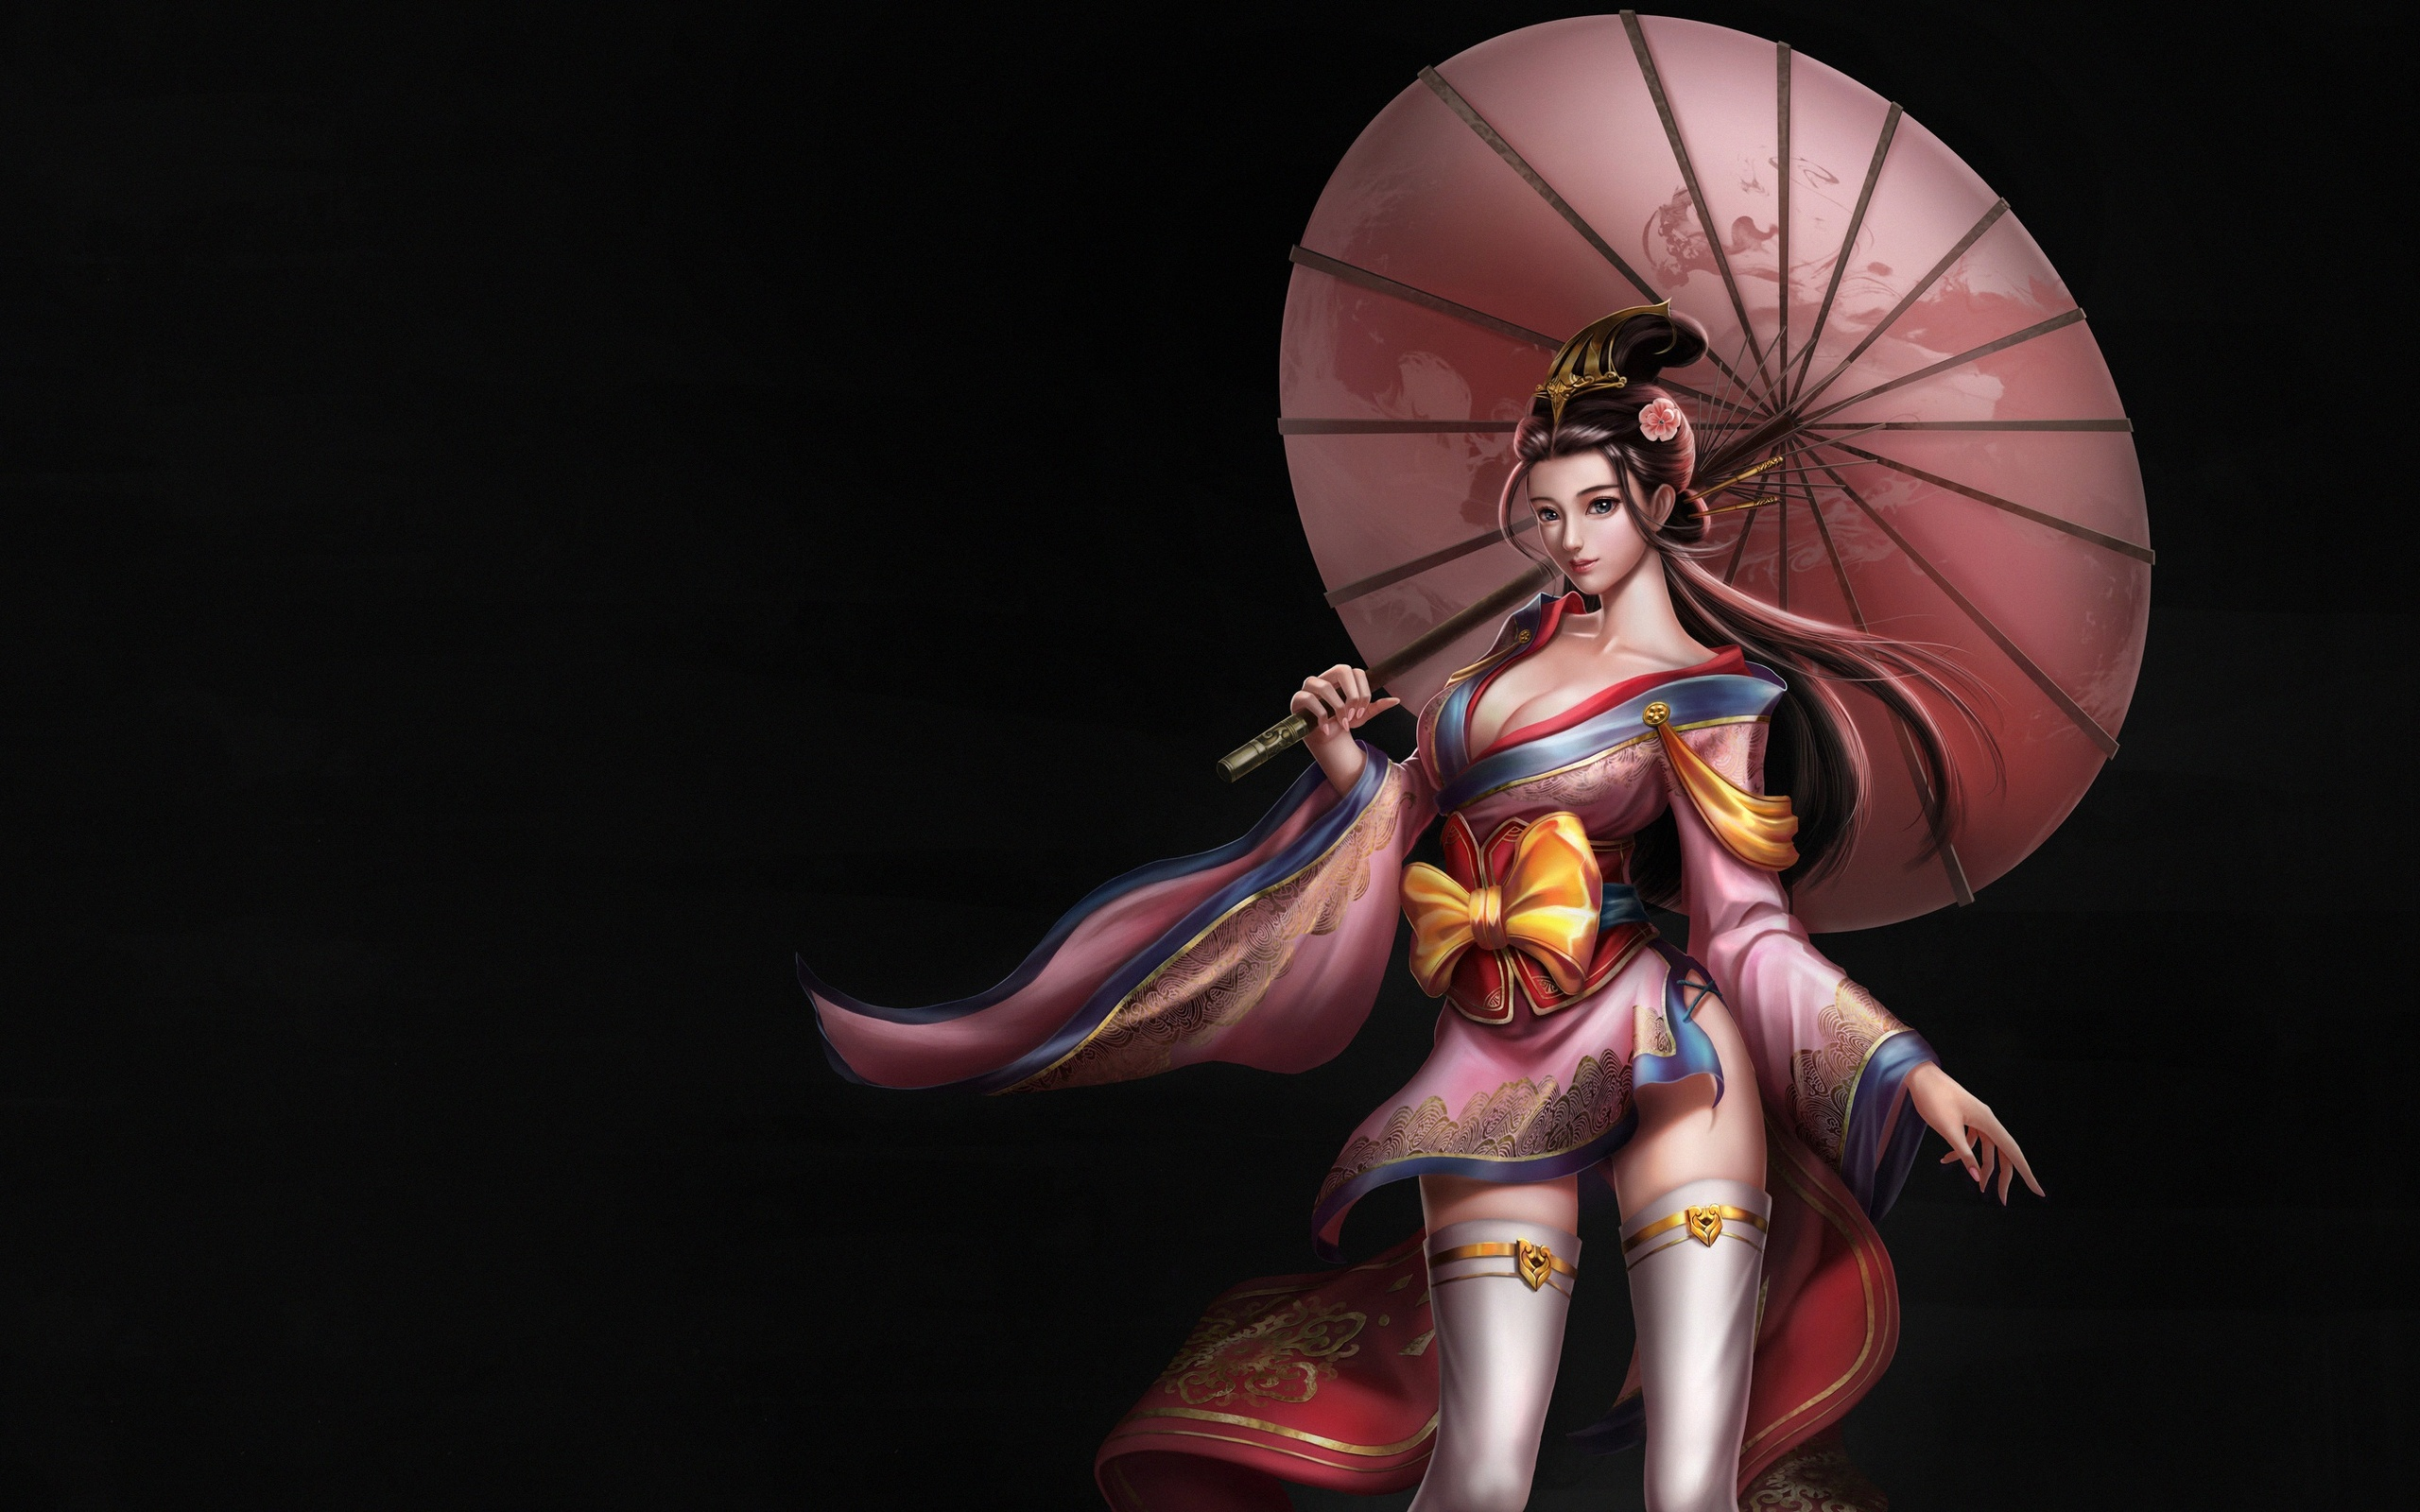 asian-girl-umbrella-fantasy-art-4k-xv.jpg